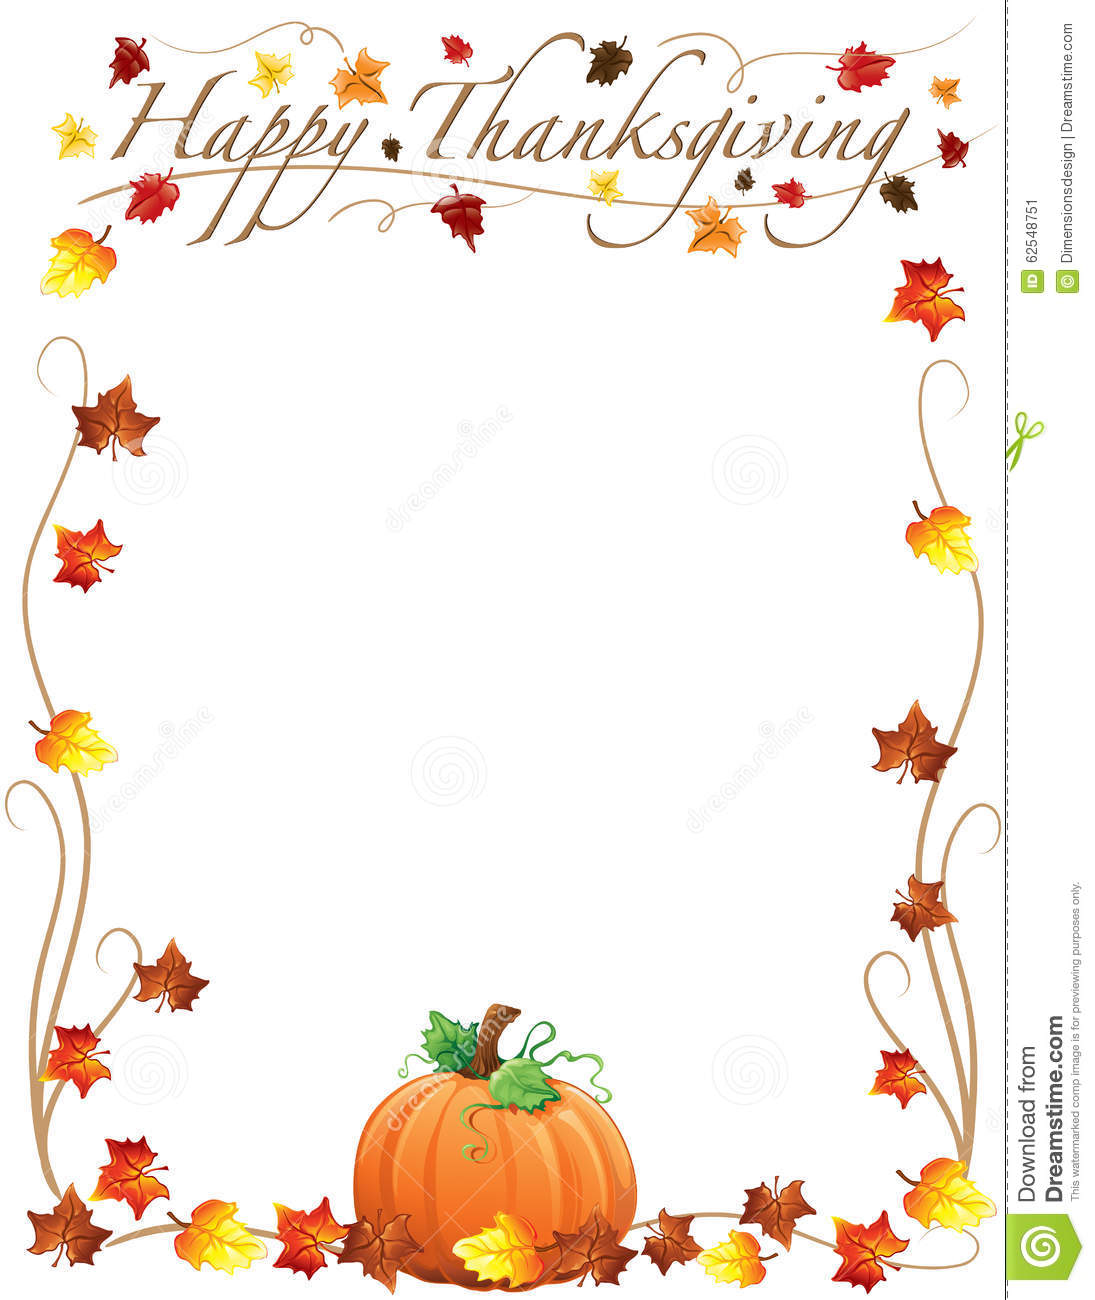 Happy Thanksgiving border with .